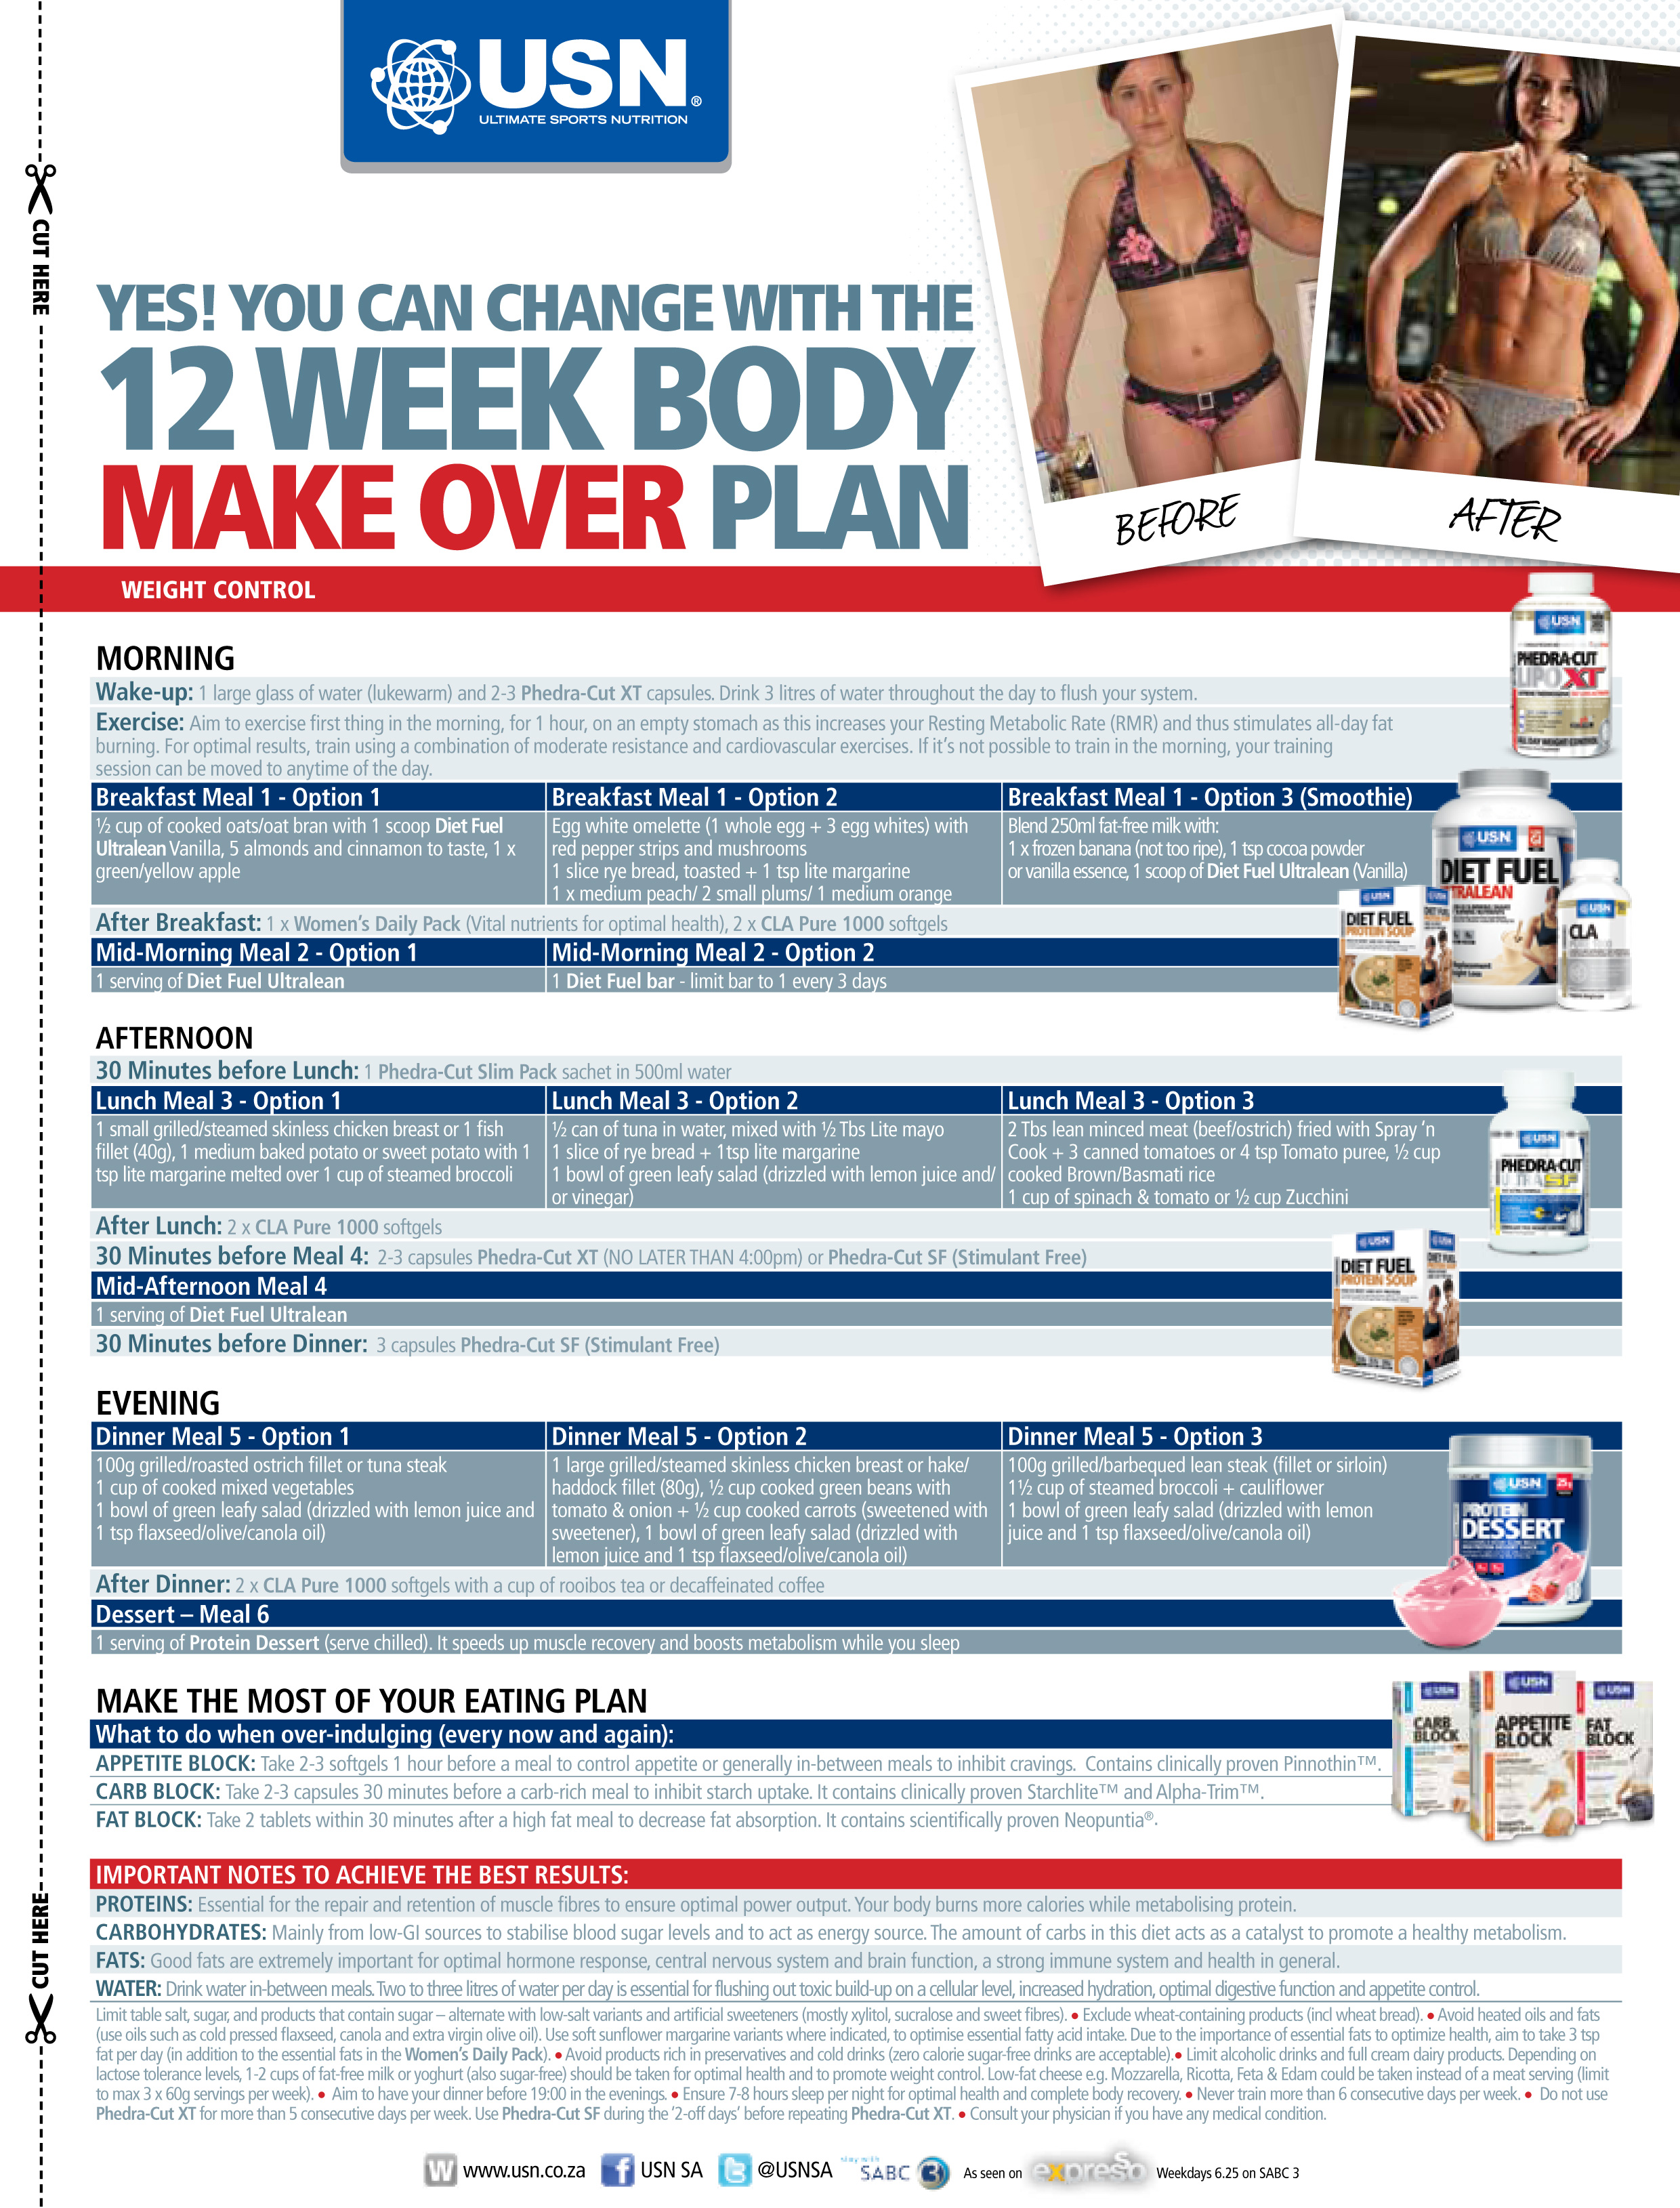 Usn fat loss diet ever